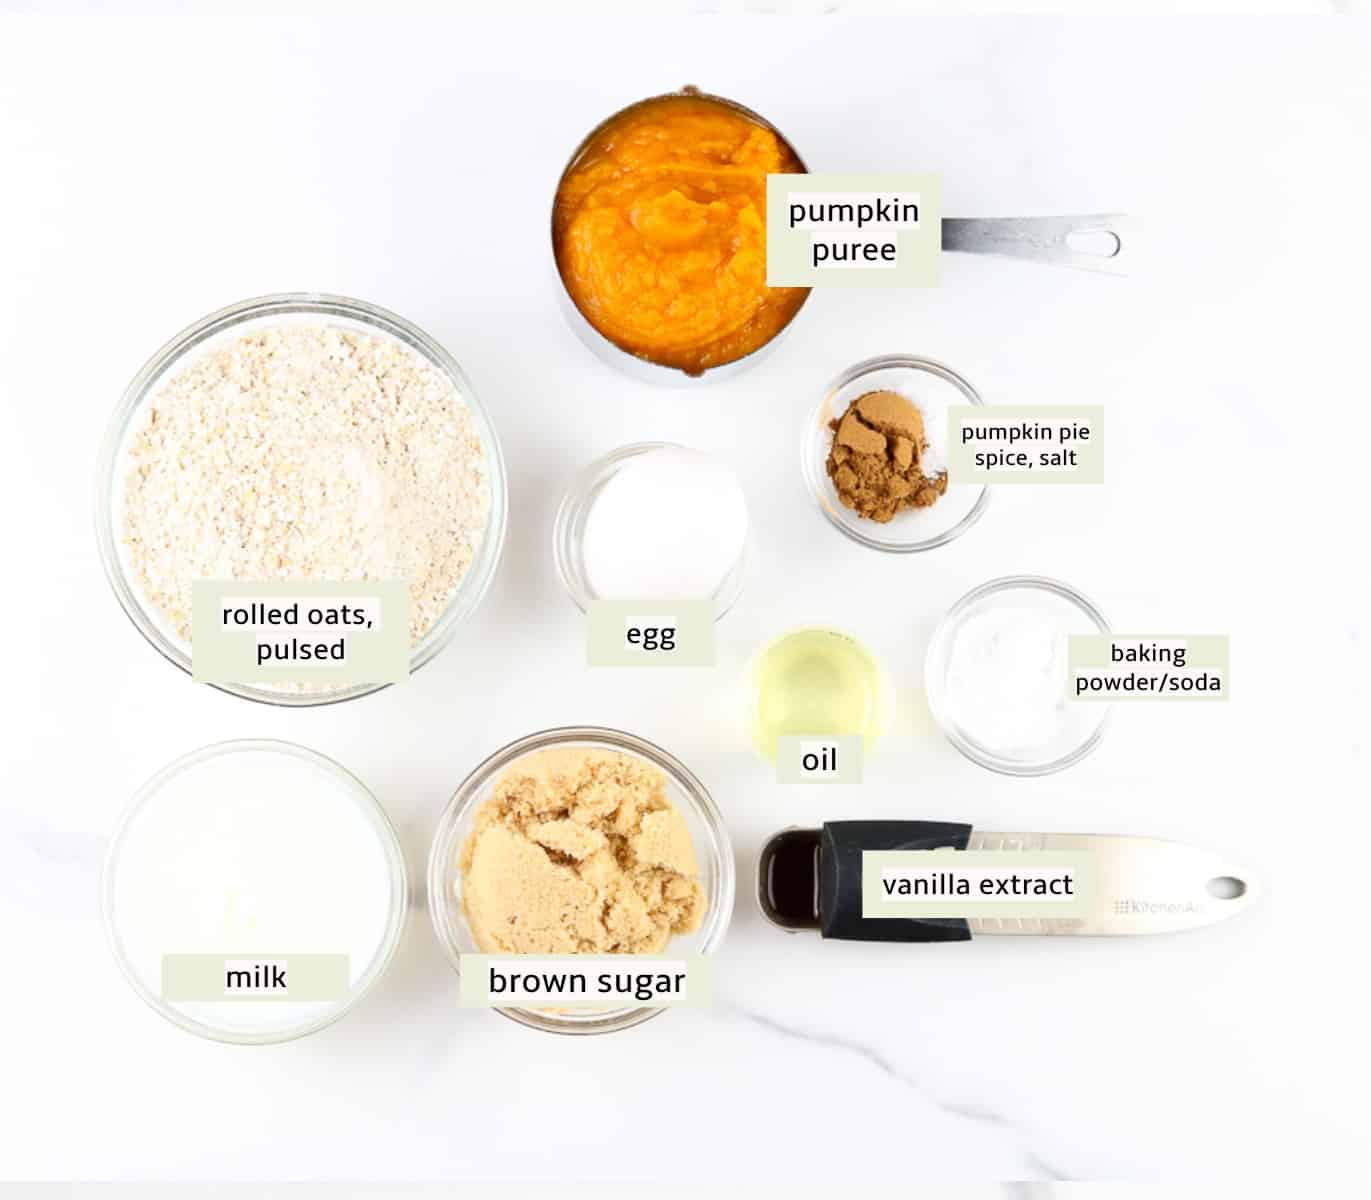 Image of ingredients to make muffins with pumpkin.